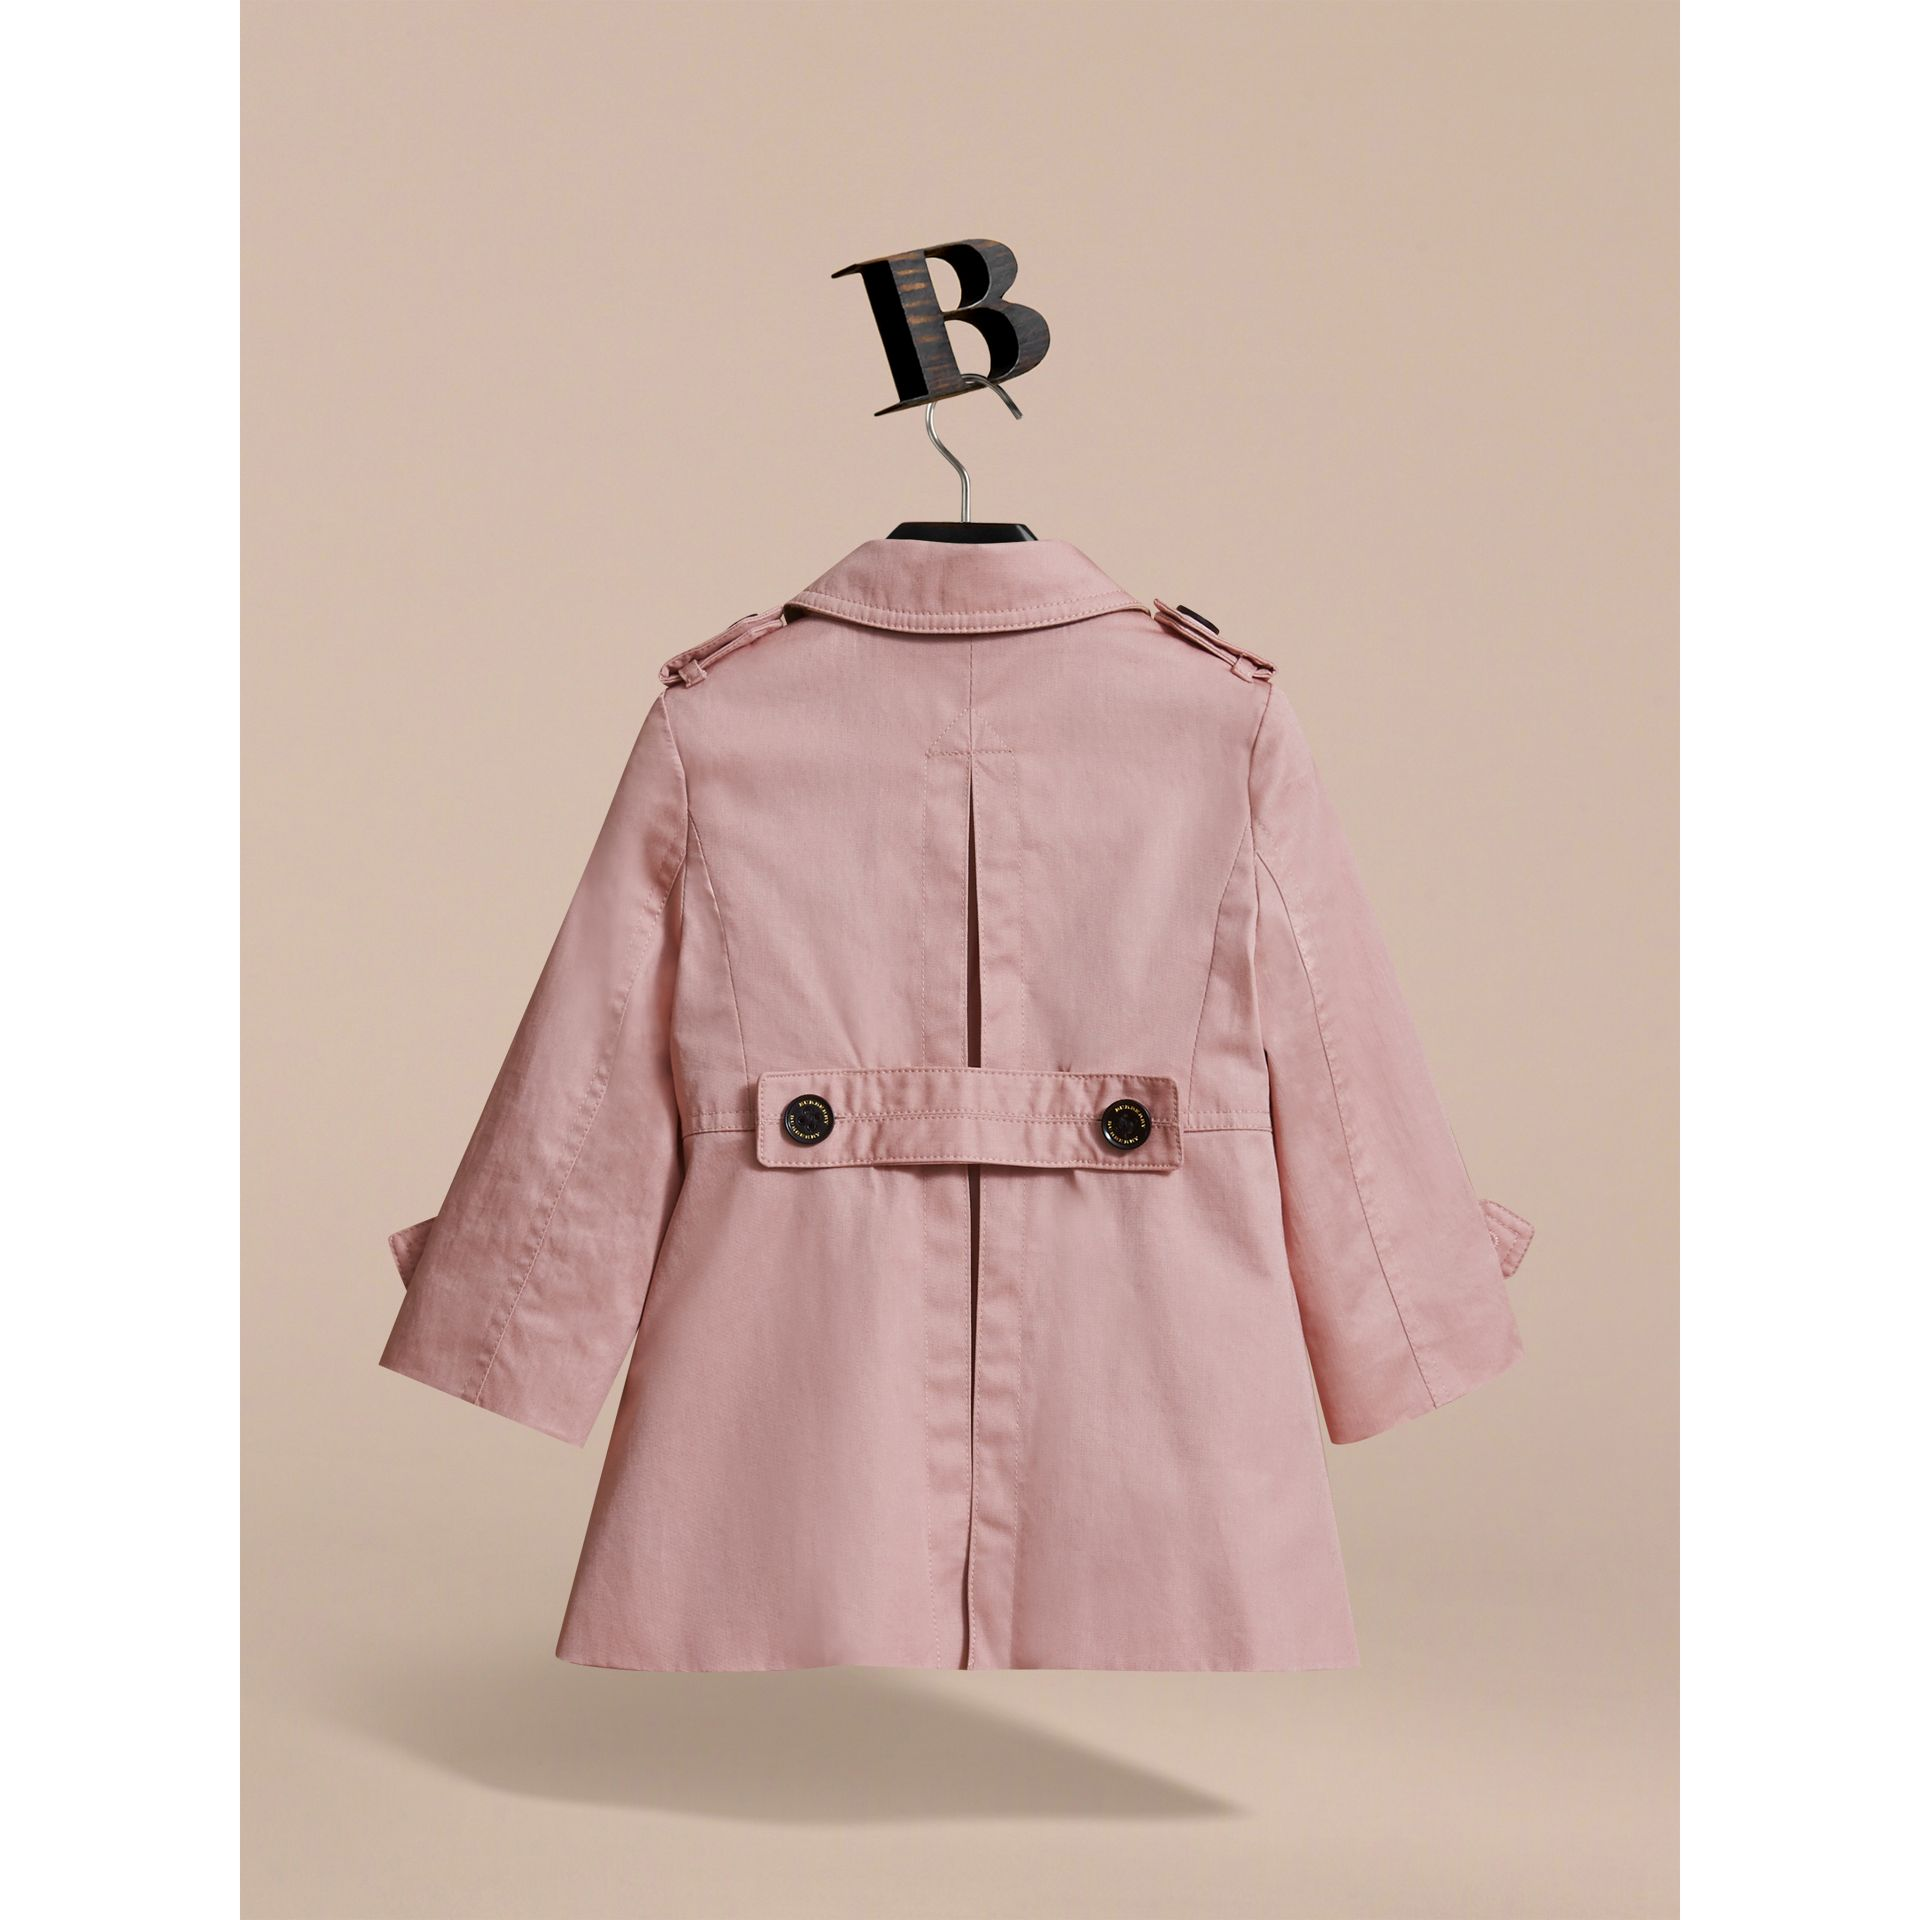 Trench-coat en coton à boutonnage simple (Rose Pâle) - Enfant | Burberry - photo de la galerie 4